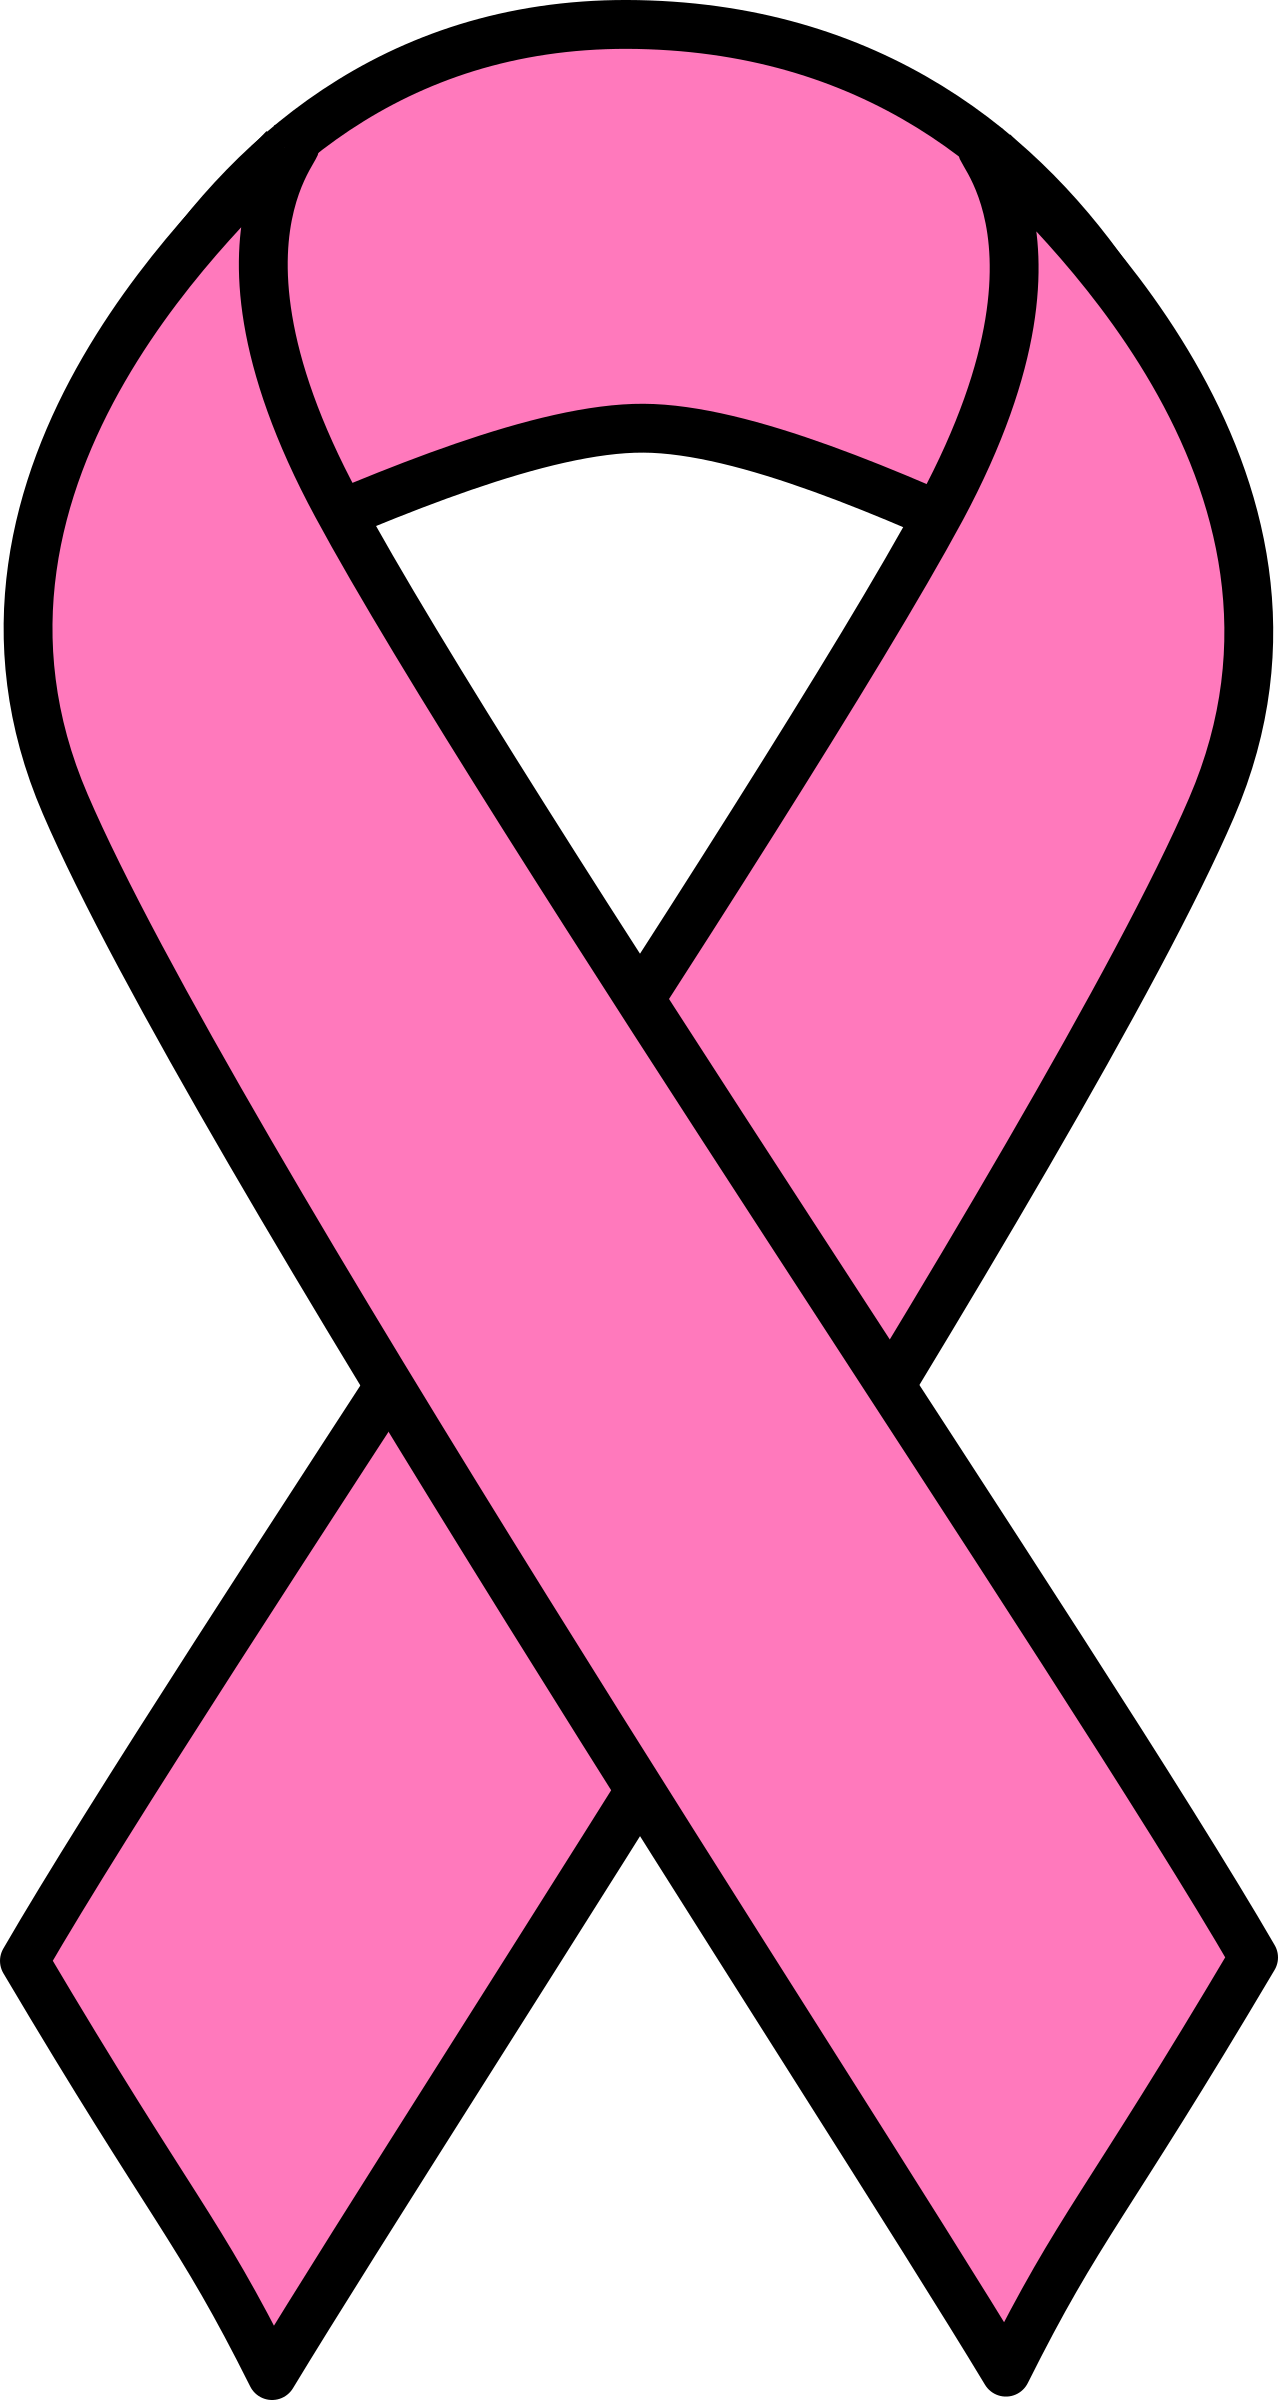 picture royalty free stock Breast clipart breast cancer. Pink ribbon big image